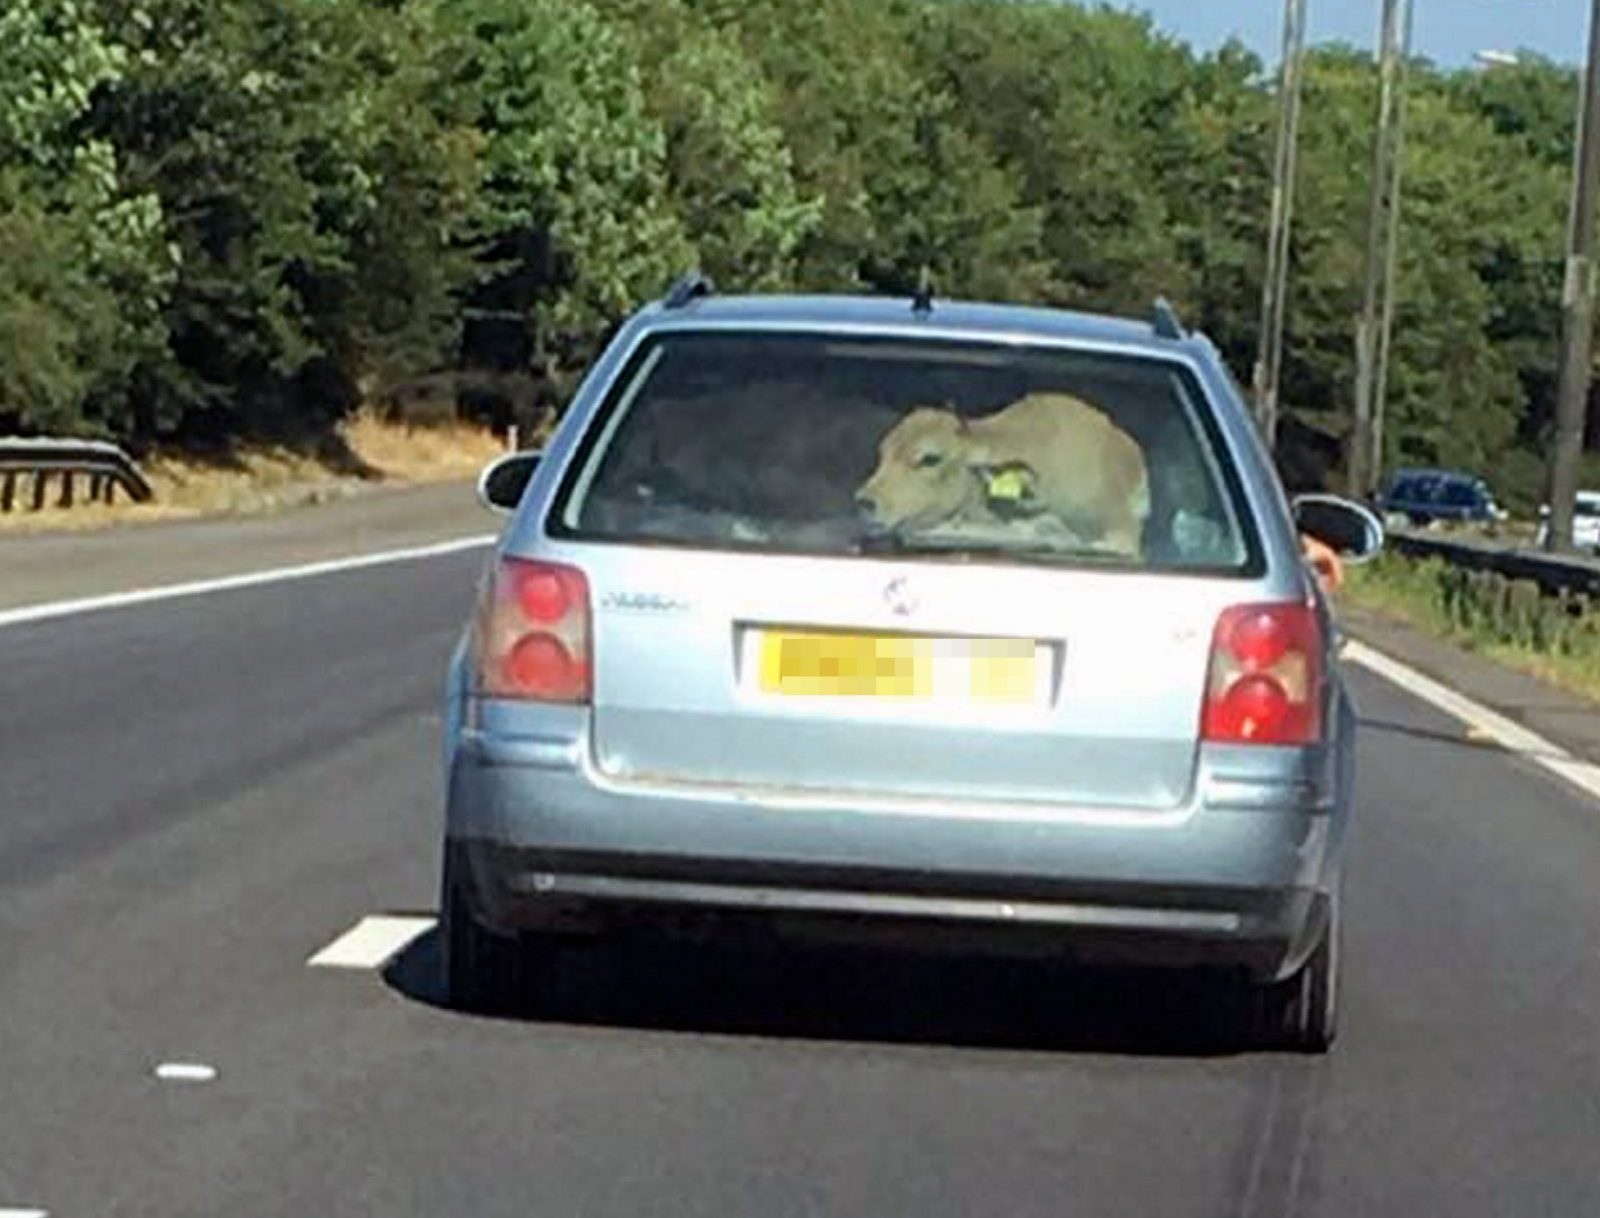 "Pictured: A picture of a young calf is seen at the back of a VW Passat estate car on the M4 motorway near Swansea, Wales, UK. 06 July 2018 Re: South Wales Police are investigating after reports a cow was seen in the back of a car on a motorway. Motorists were stunned after apparently seeing the large animal in the light blue 04 reg Volkswagen Passat on Friday evening. Police officers were looking into whether any road traffic or animal welfare offences occurred. The RSPCA said it was ""extremely concerned"" about the images. One image shows the car going past junction 42 of the eastbound carriageway. An RSPCA spokeswoman said: ""This is a completely unacceptable way to transport a large, farm animal. Penalties for overloading a car include fines of up to ?300 as well as three penalty points."